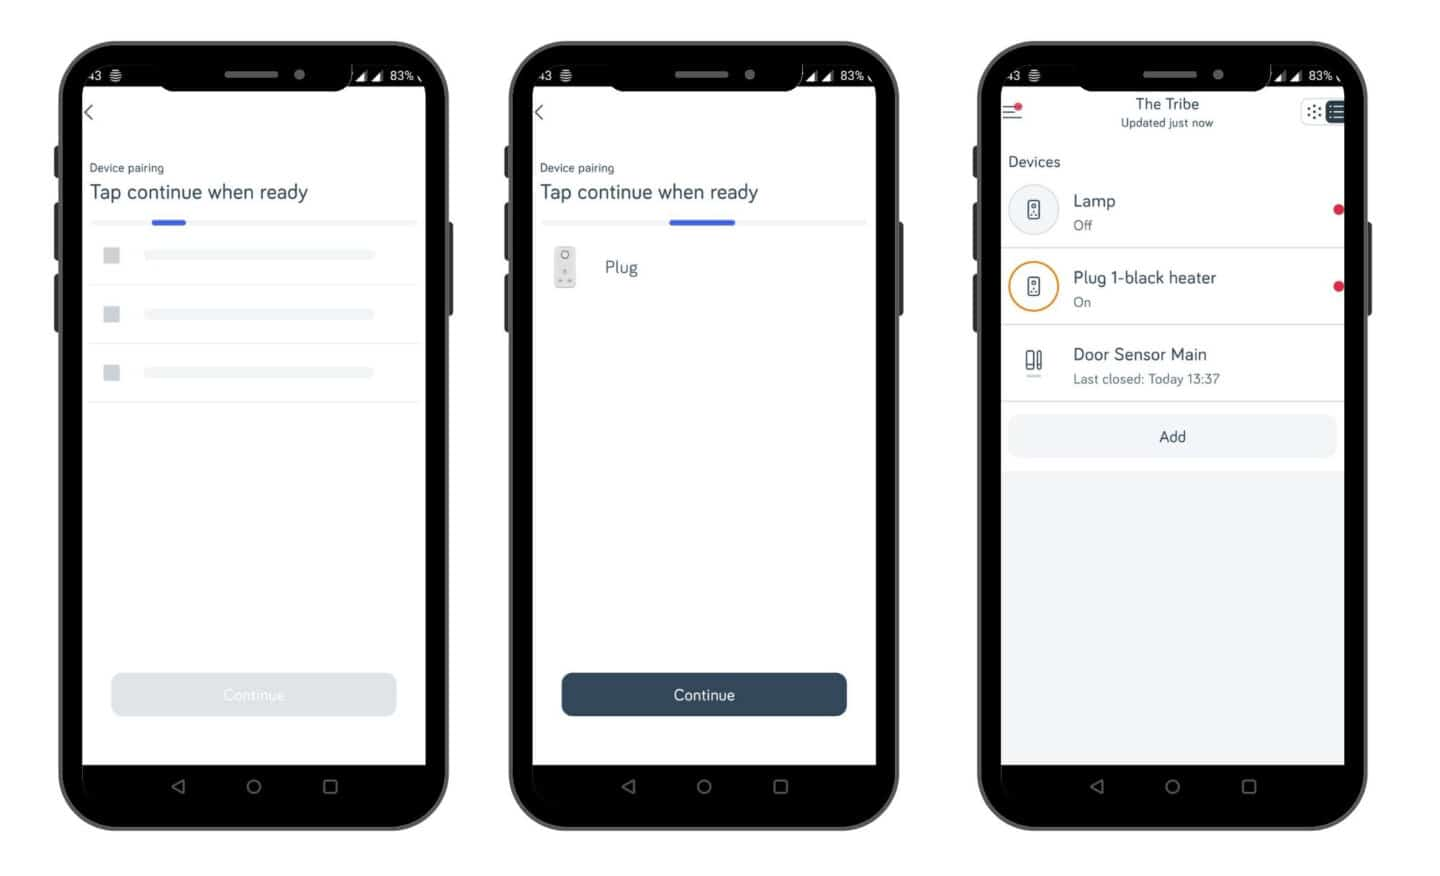 Screen shots of pairing Hive smart devices with the Hive Hub